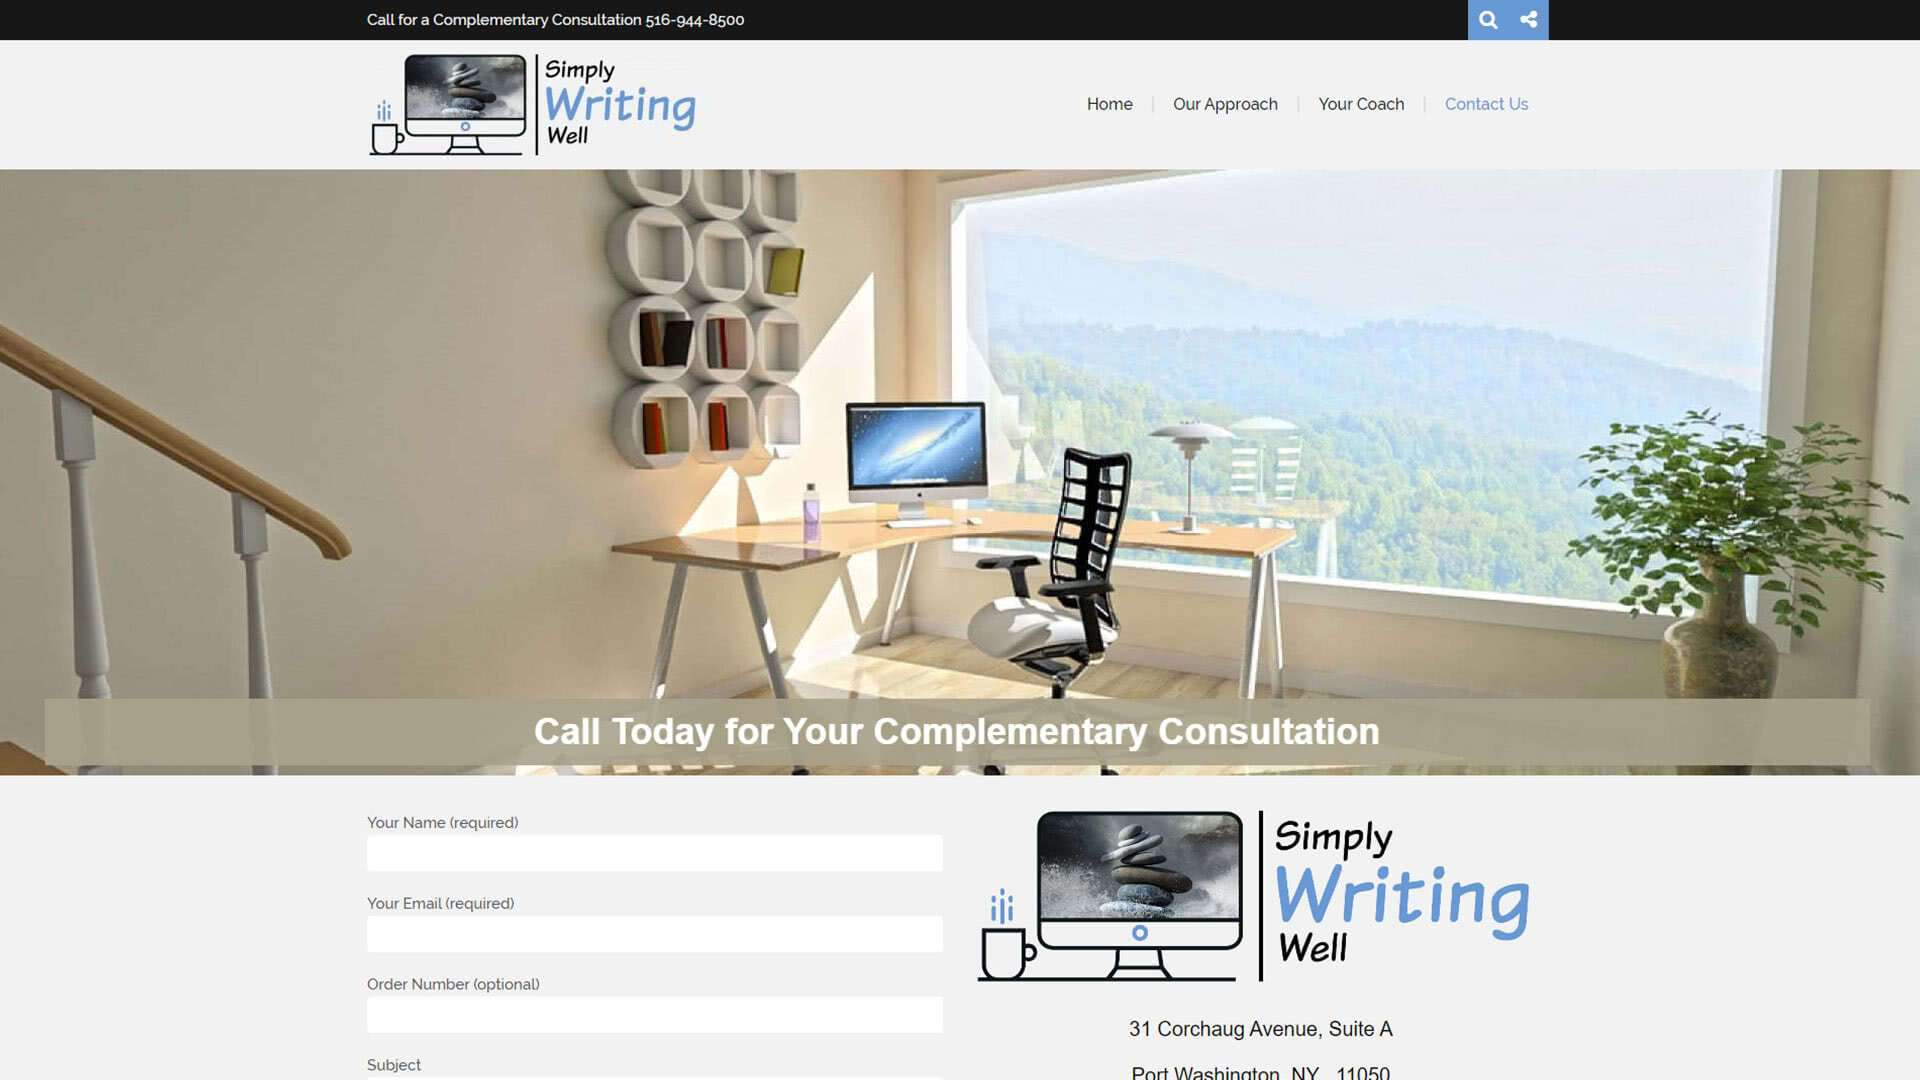 simply-writing-well-contact-us